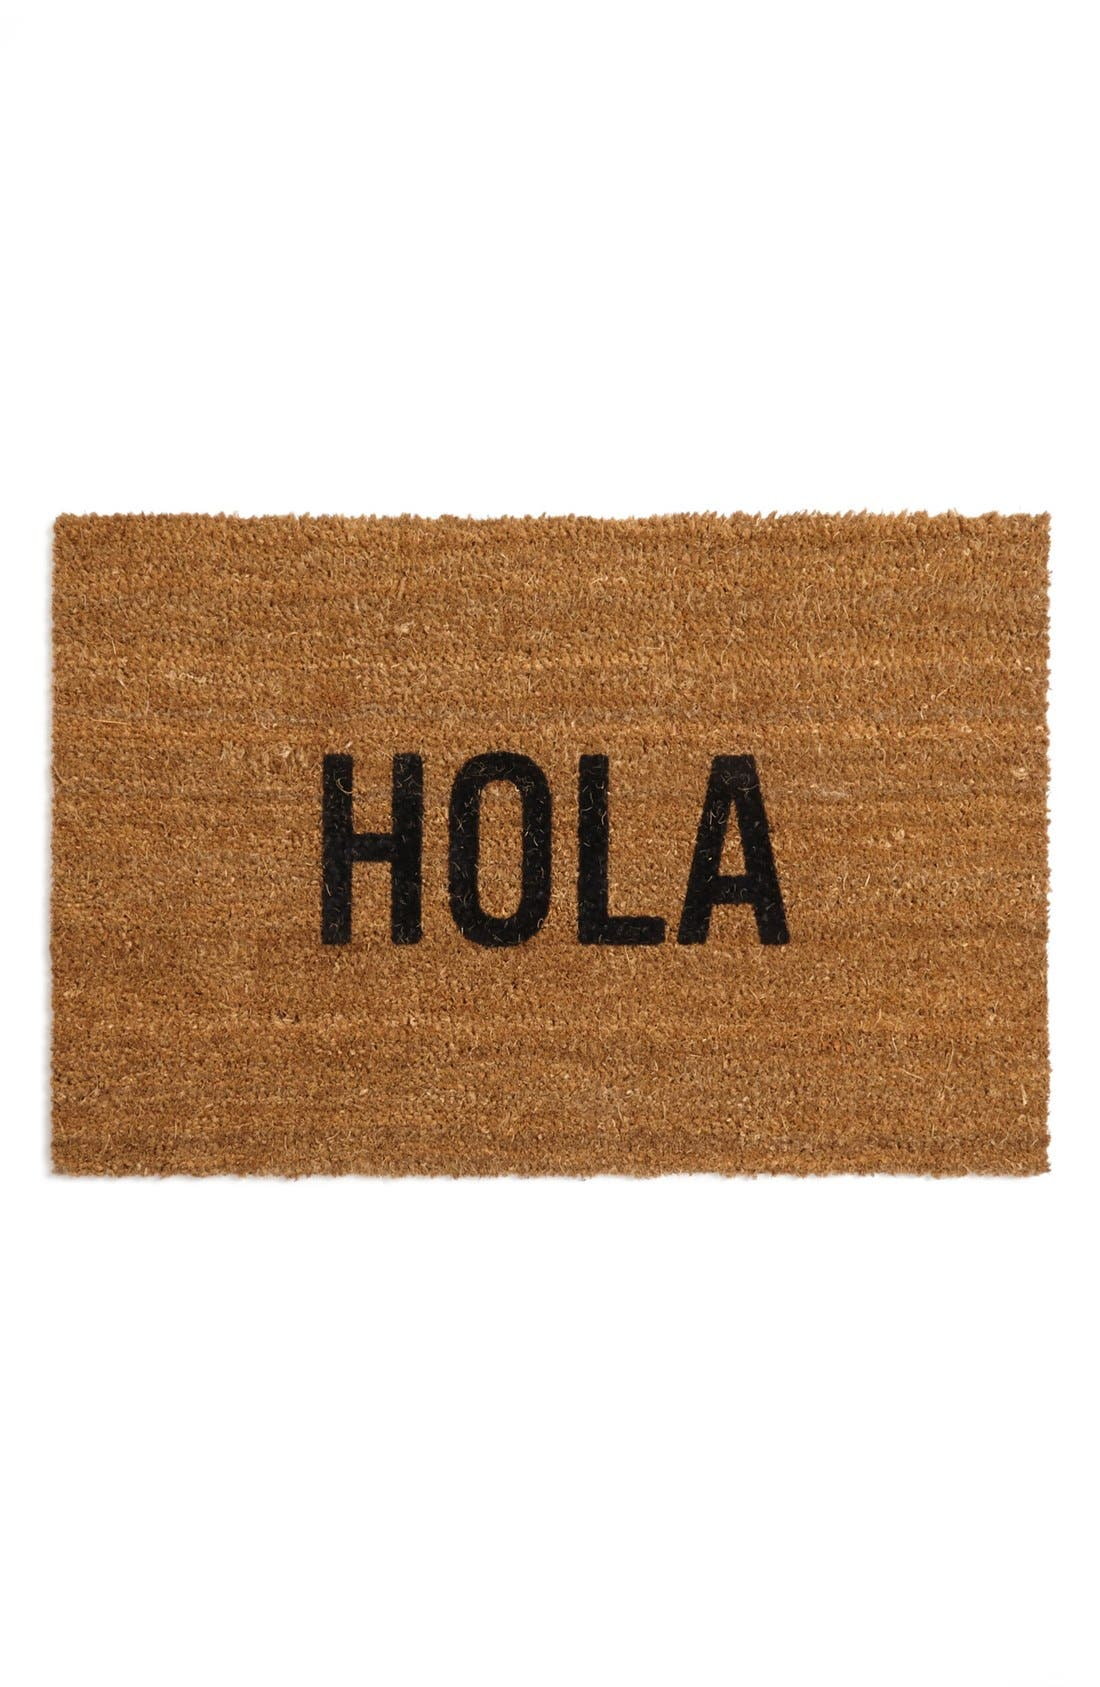 'Hola' Doormat,                             Main thumbnail 1, color,                             Brown